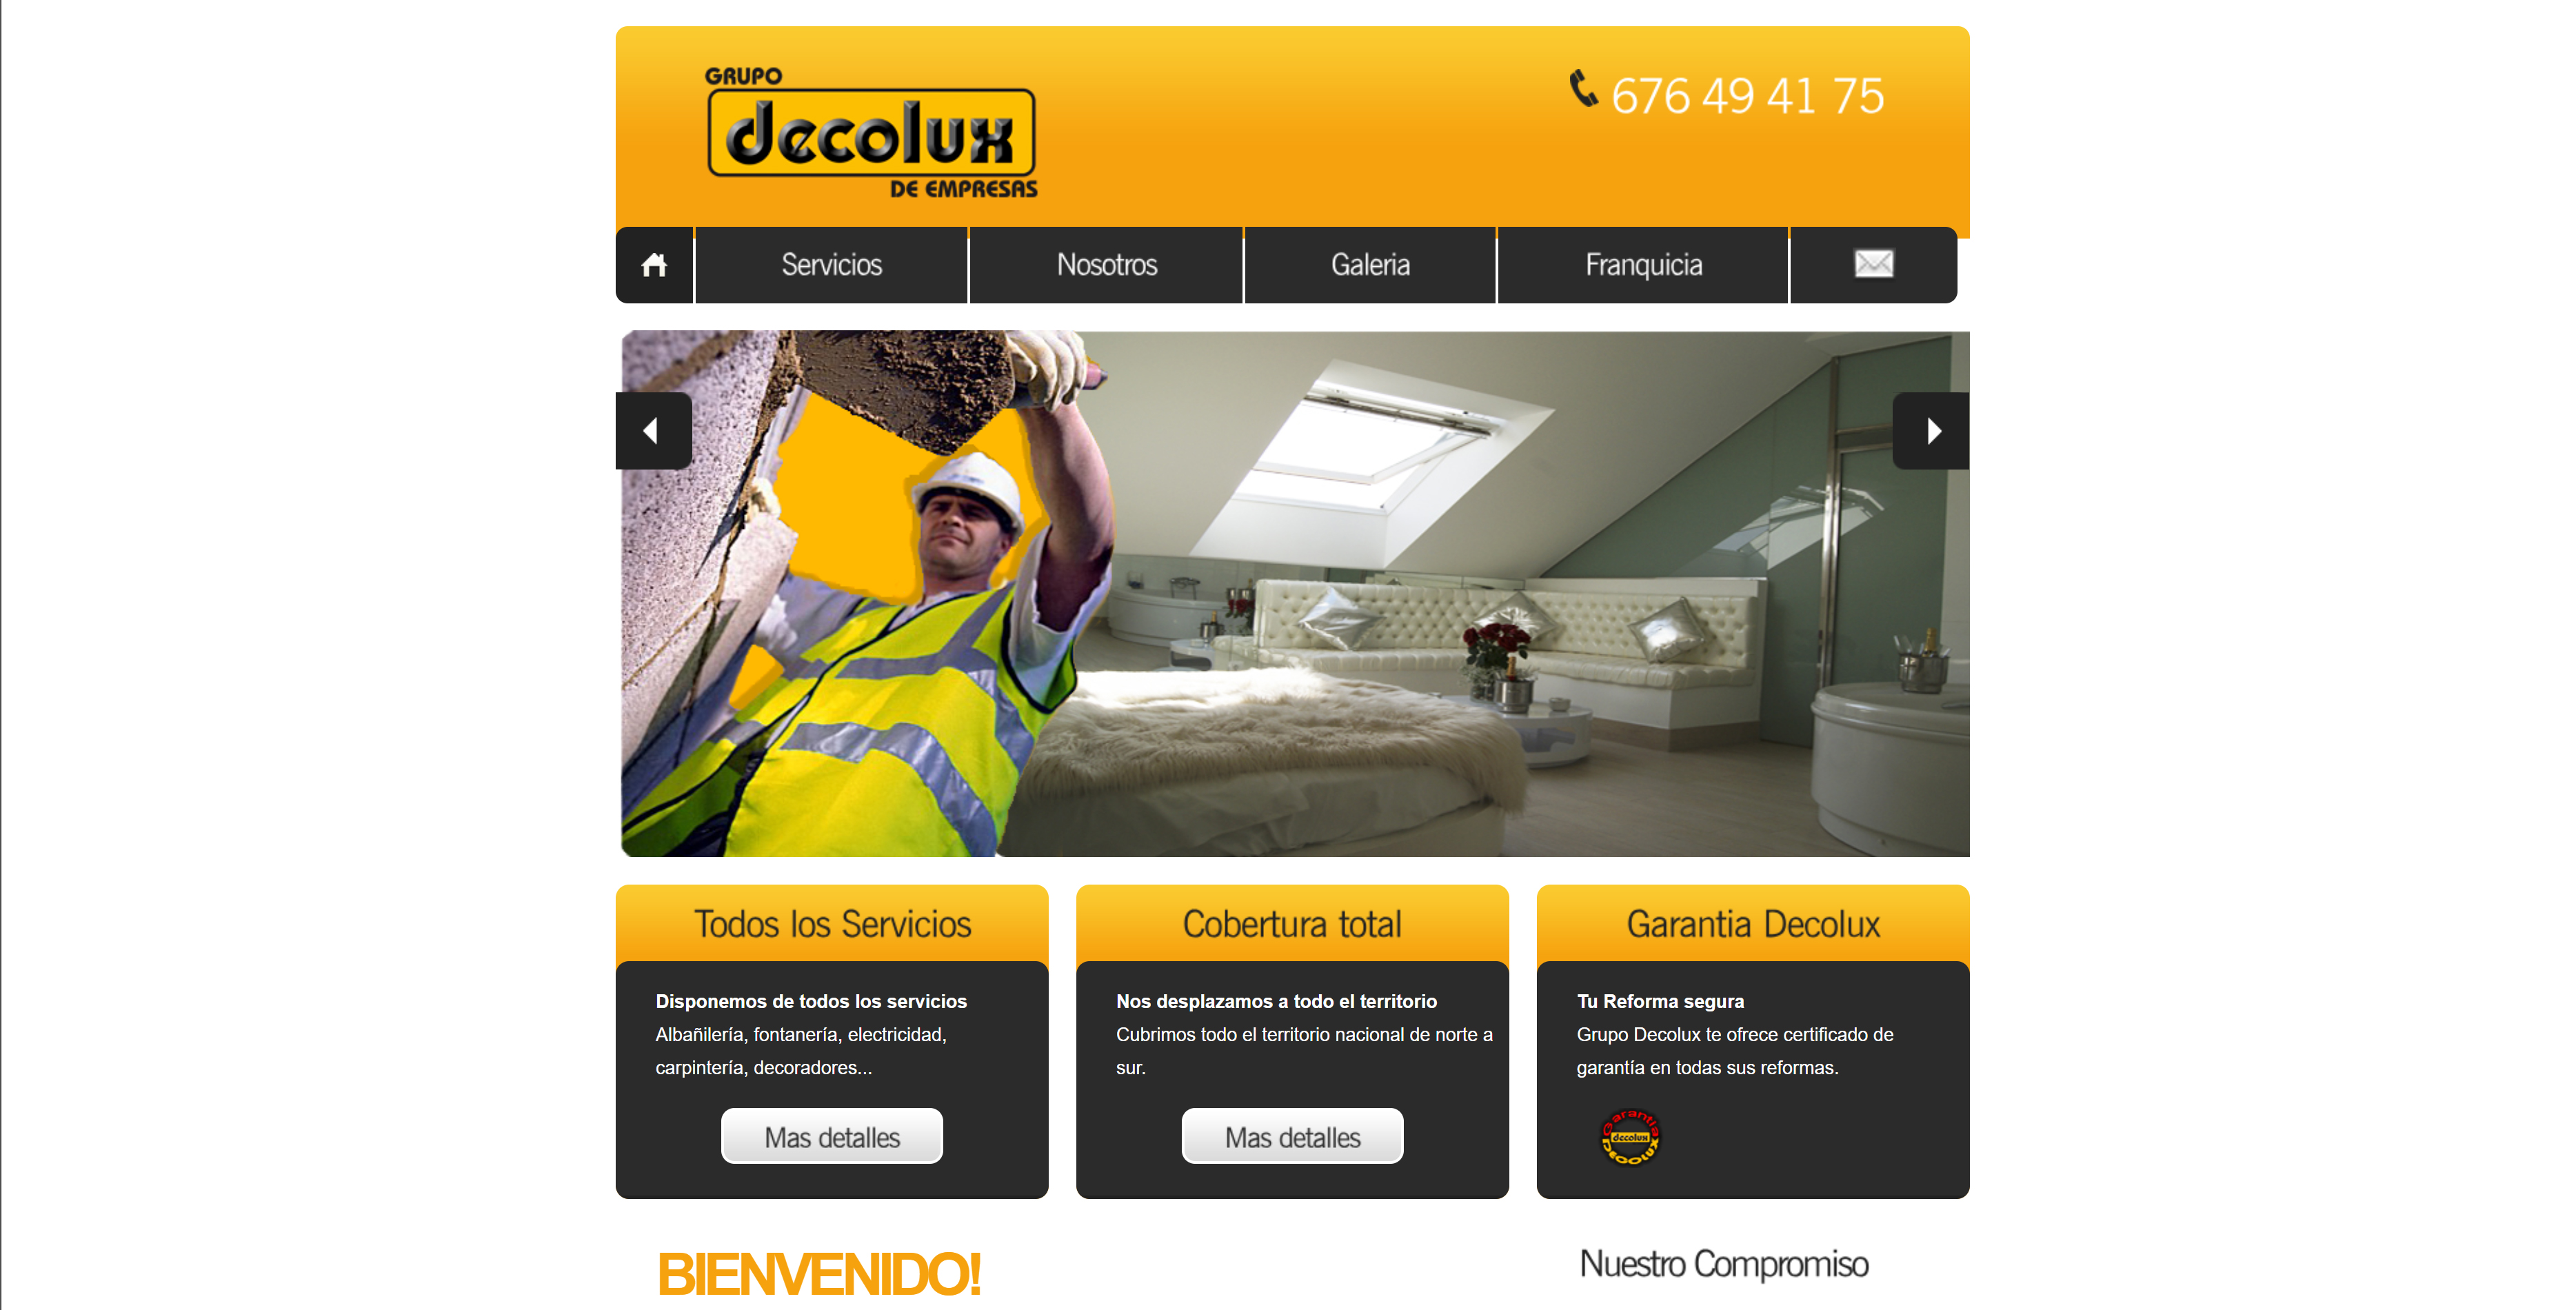 Website of Decolux